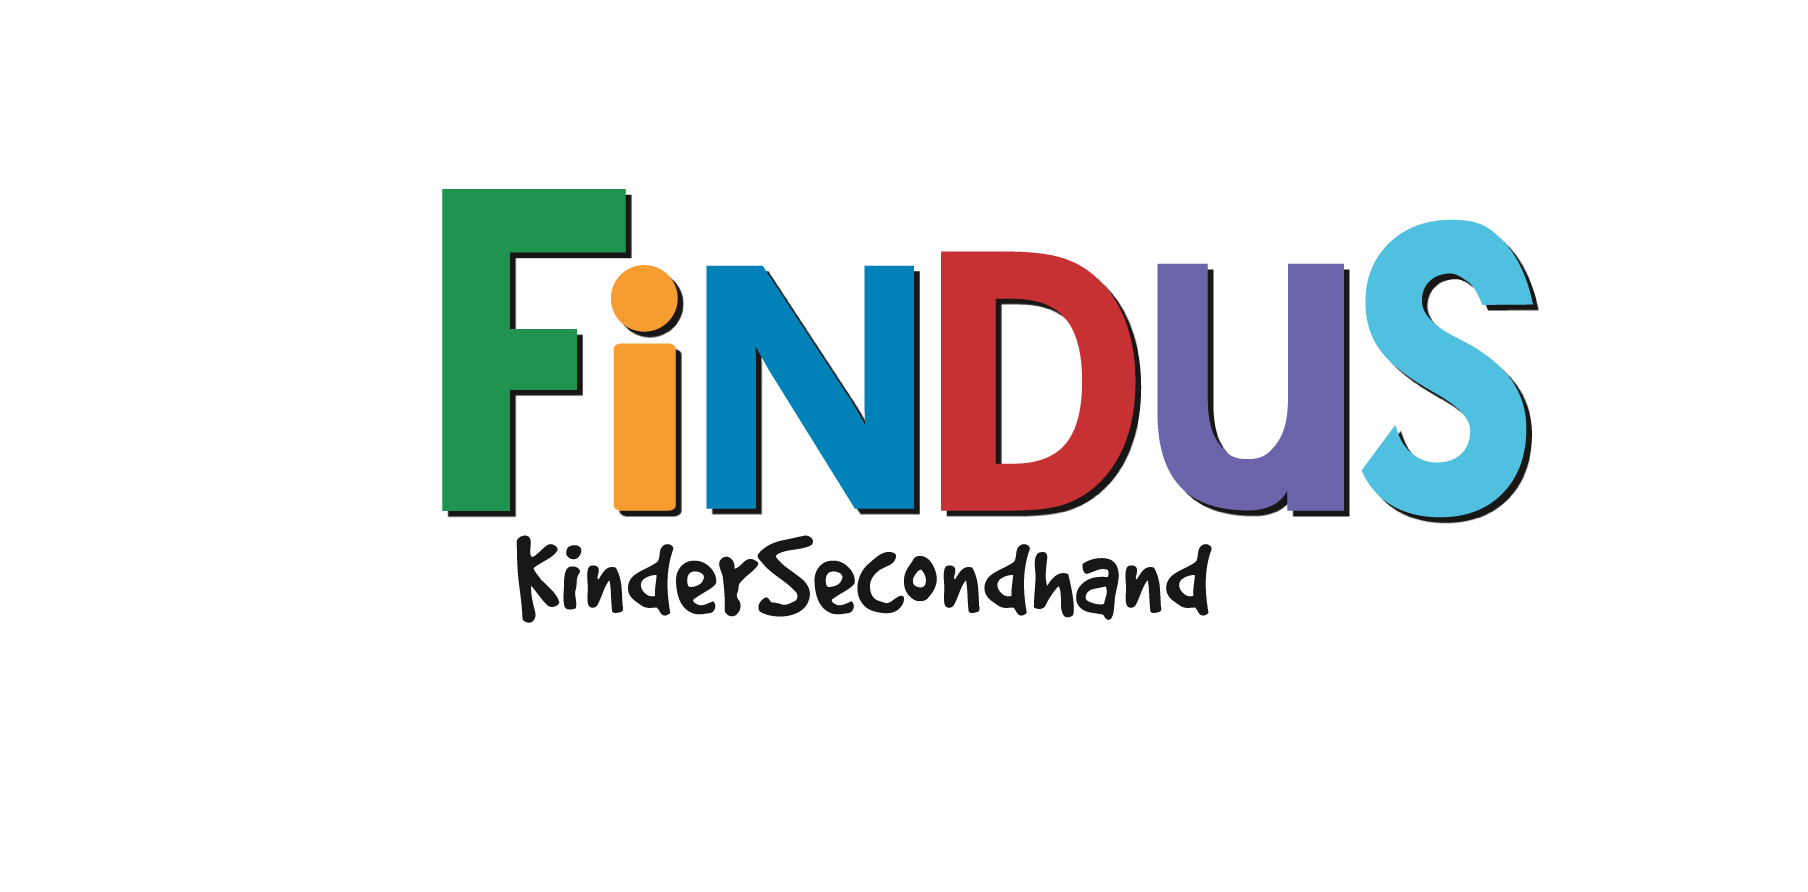 FiNDUS – first & secondhand for kids